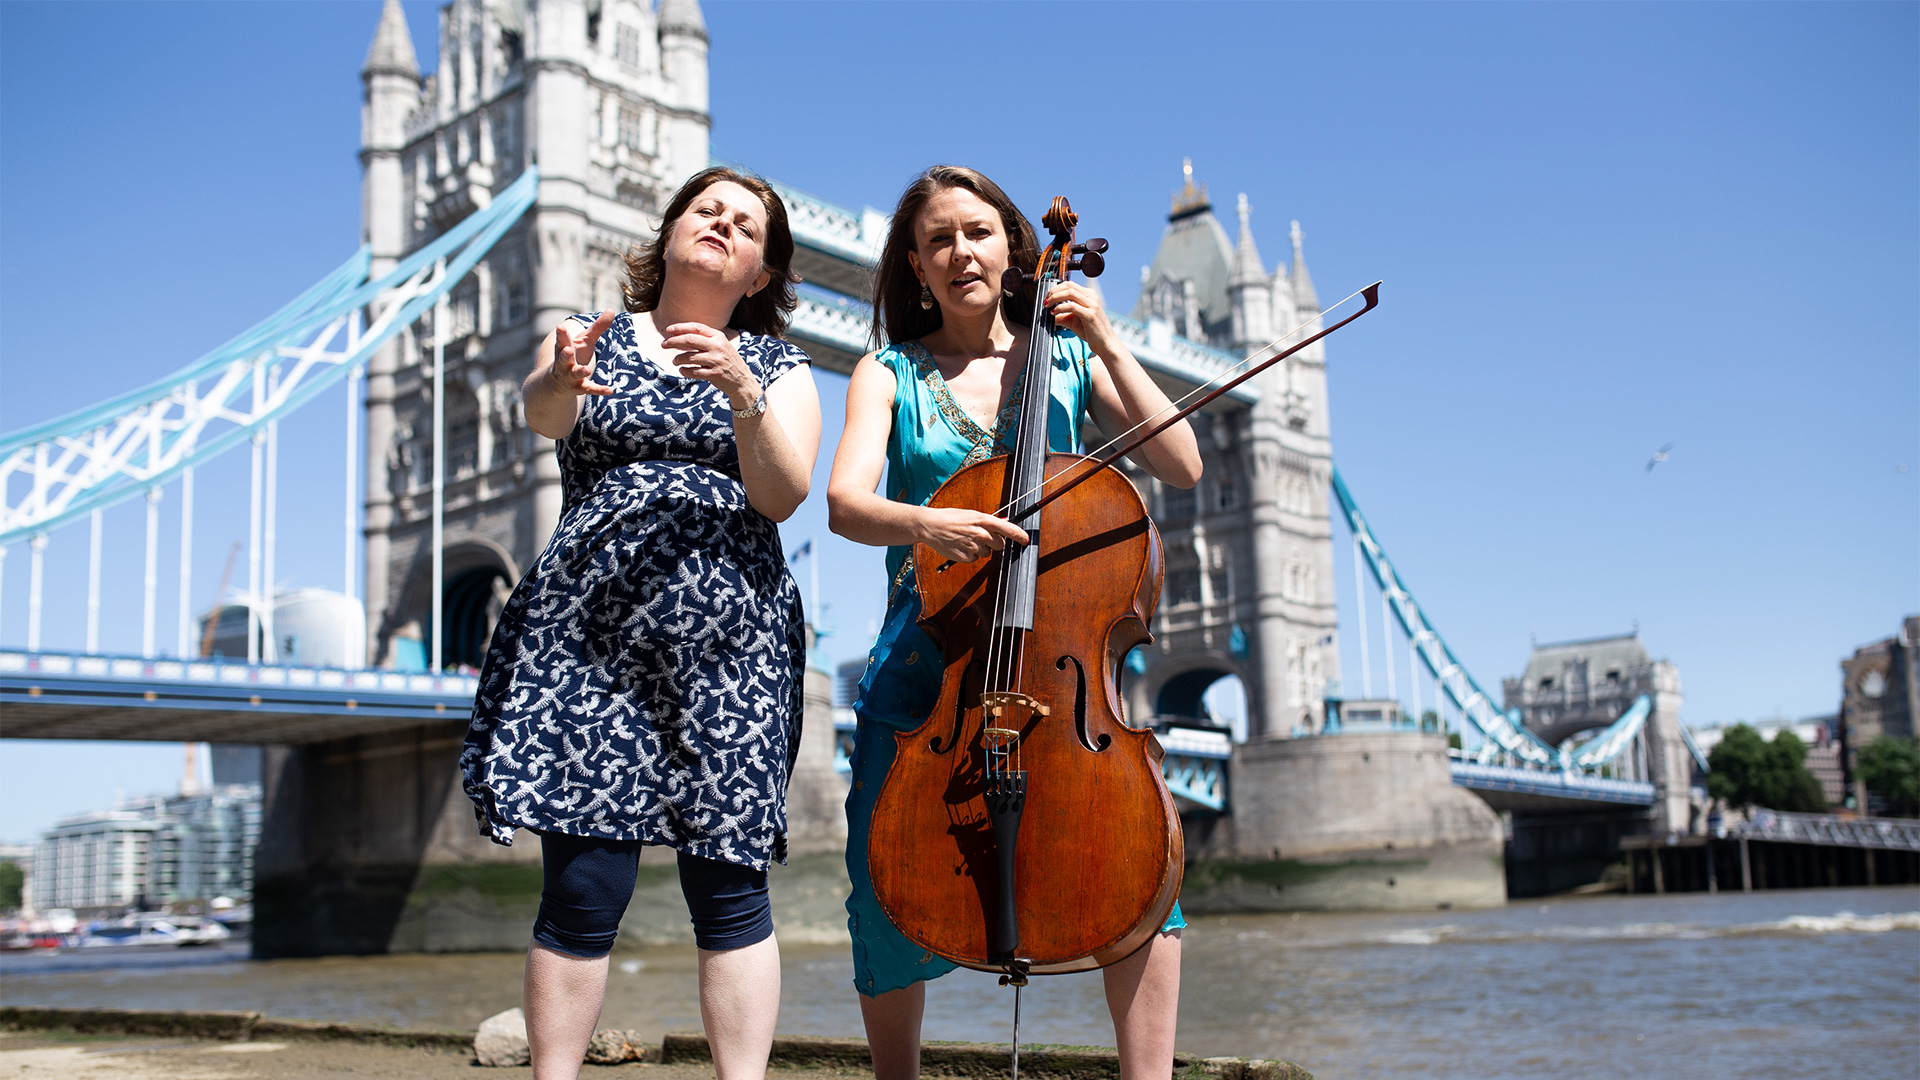 Sally Pomme Clayton and musician Emma Clare at Totally Thames 2018, Mother Danube. Photo: Ed Stone. Image courtesy of Chloe Nelkin Consulting.